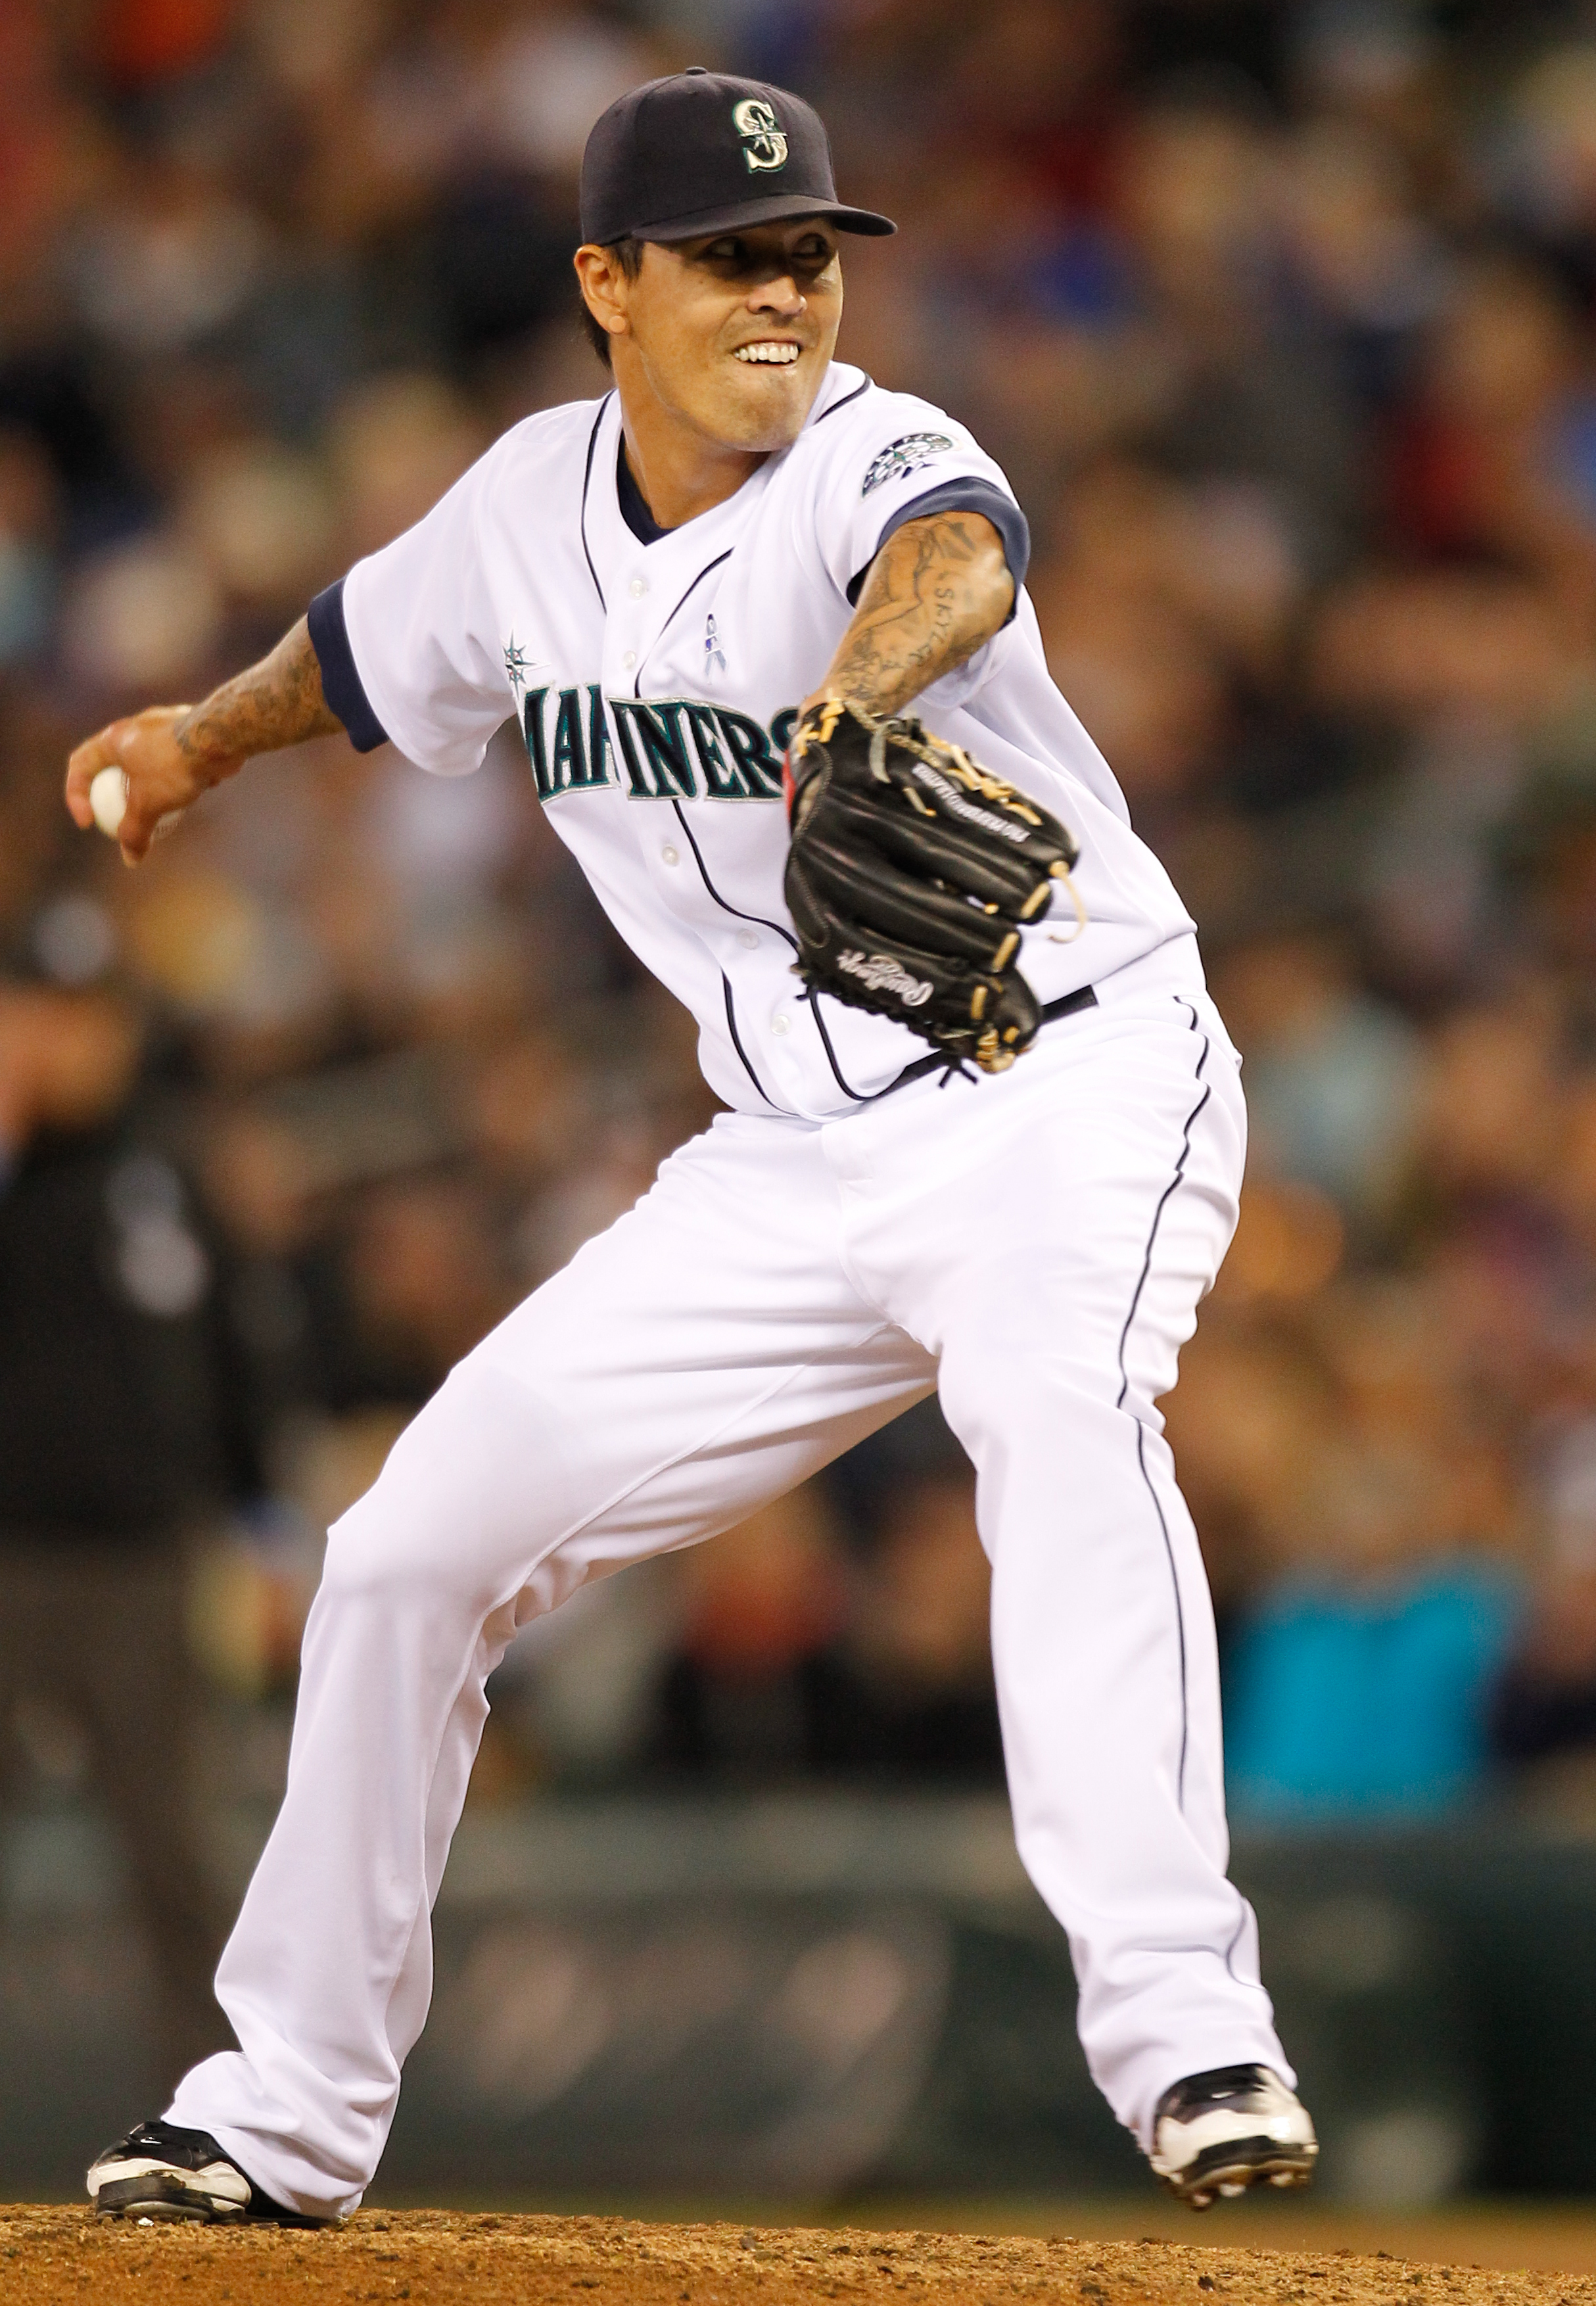 SEATTLE - JUNE 20:  Relief pitcher Brandon League #43 of the Seattle Mariners pitches against the Cincinnati Reds on June 20, 2010 at Safeco Field in Seattle, Washington. (Photo by Otto Greule Jr/Getty Images)